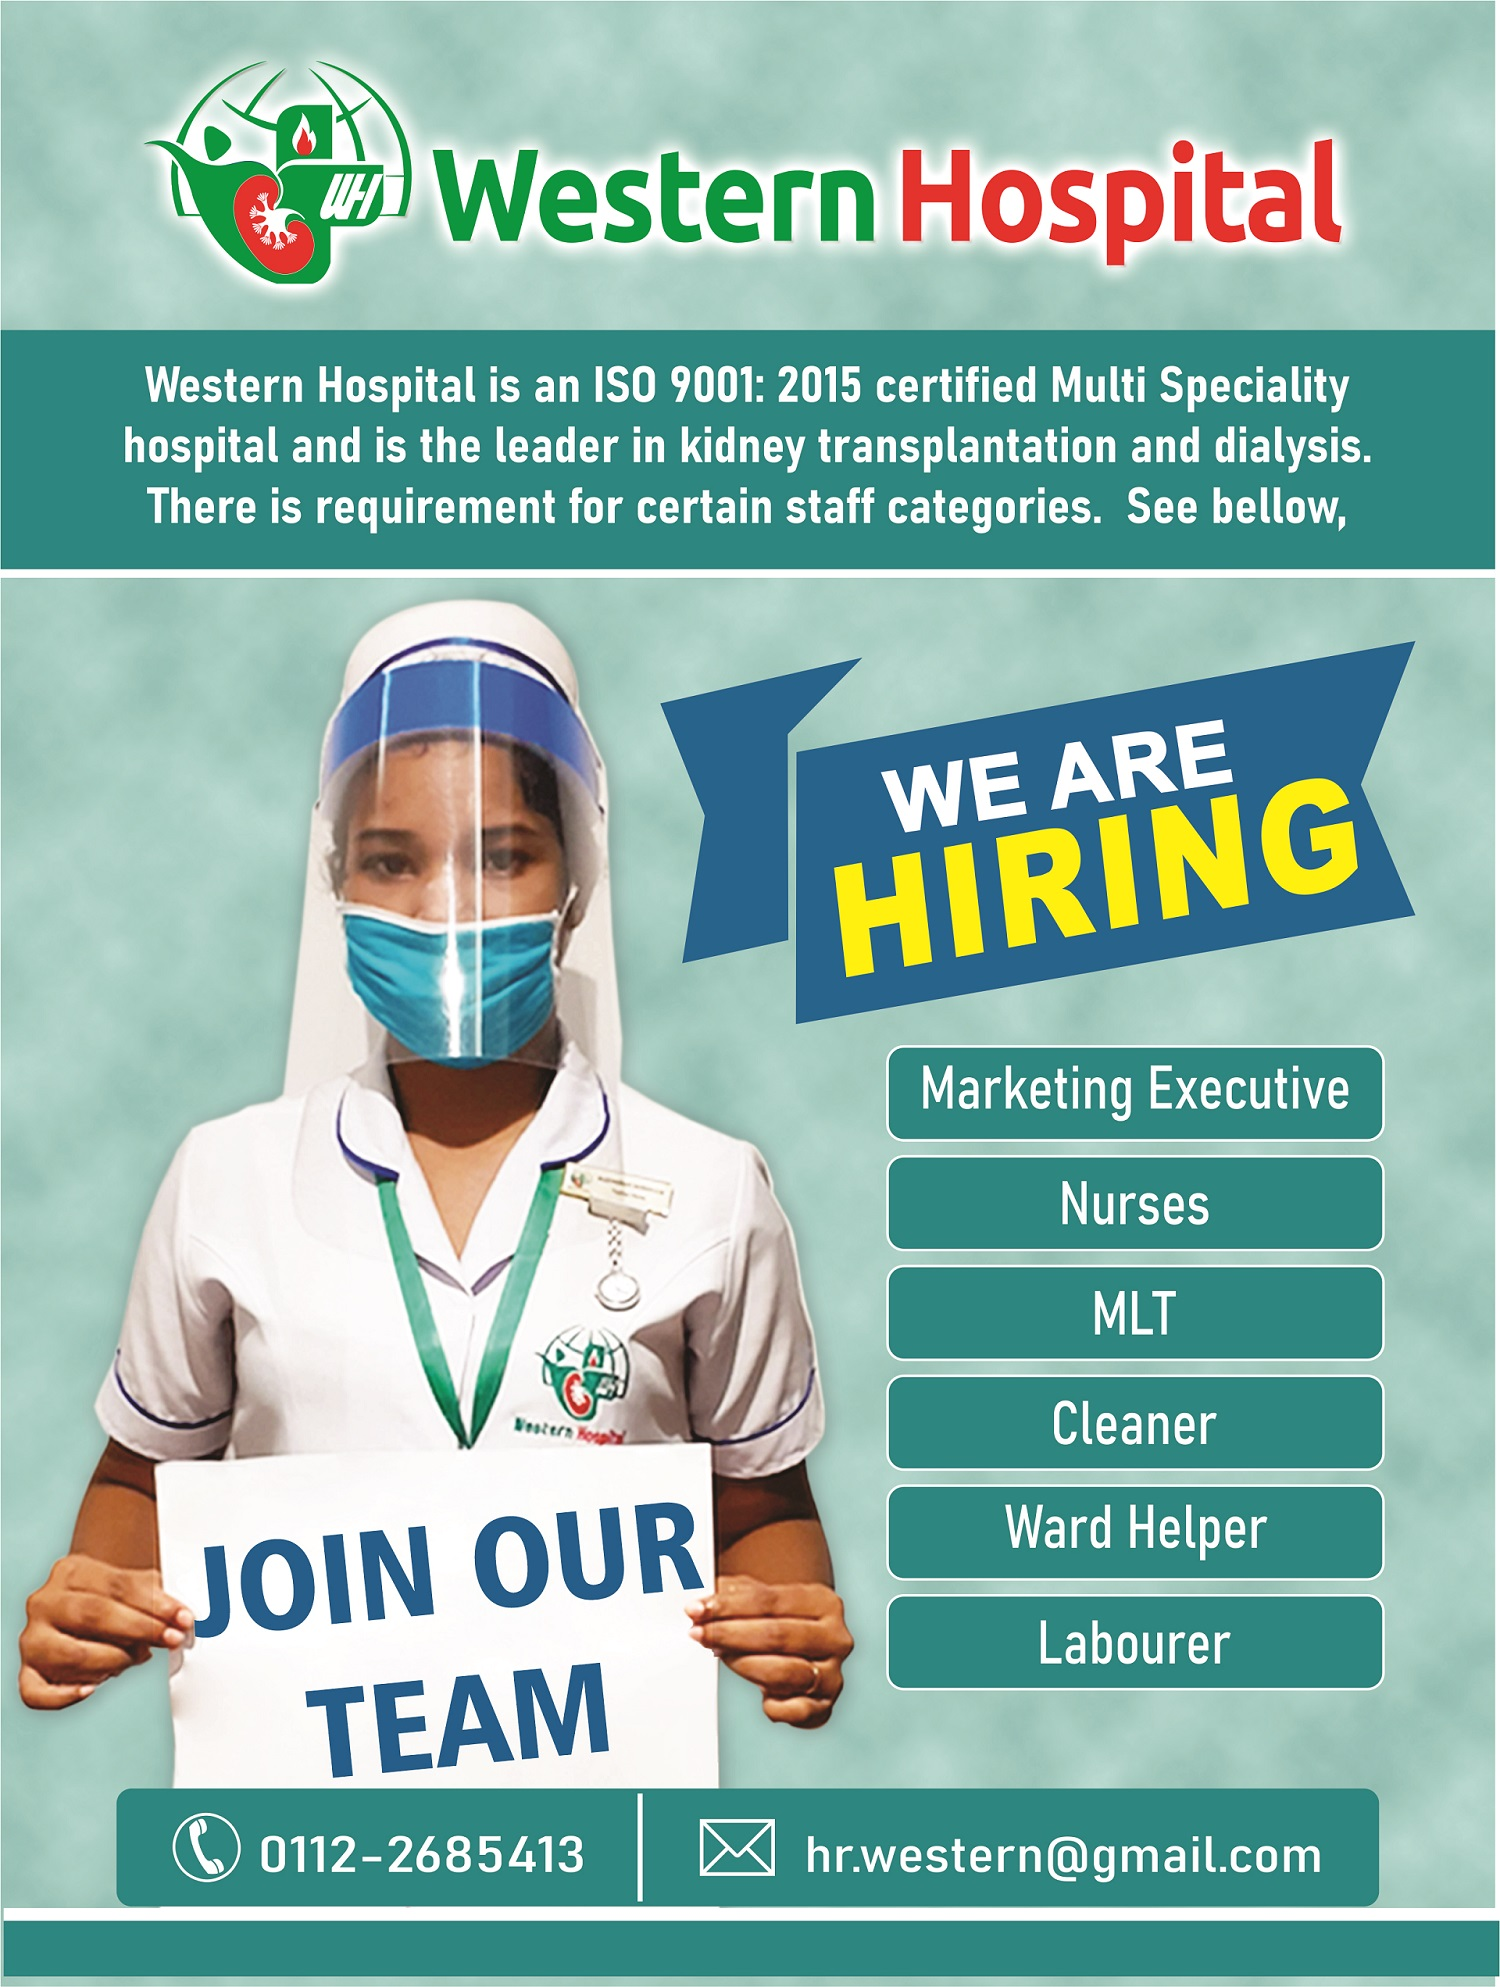 We Are Hiring 3